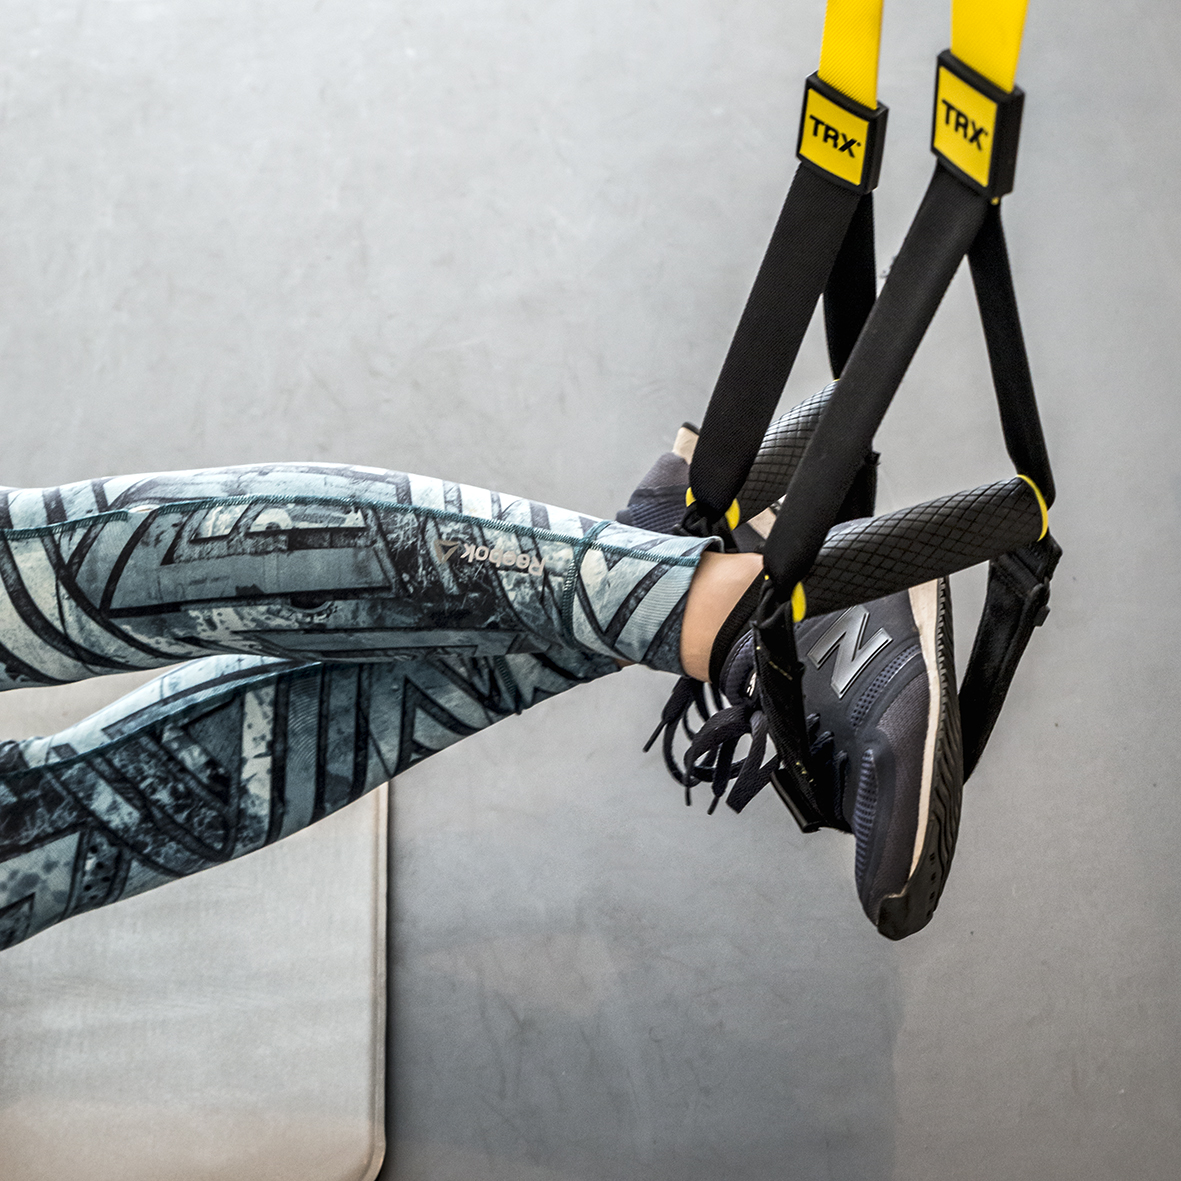 TRX - 'TRX' stands for Total Resistance Exercise. It was created by the US Navy SEALs and requires the use of the TRX Suspension Trainer; a portable performance training tool that leverages gravity and the user's body weight to complete hundreds of exercises.These exercises develop strength, balance, flexibility and core stability simultaneously.